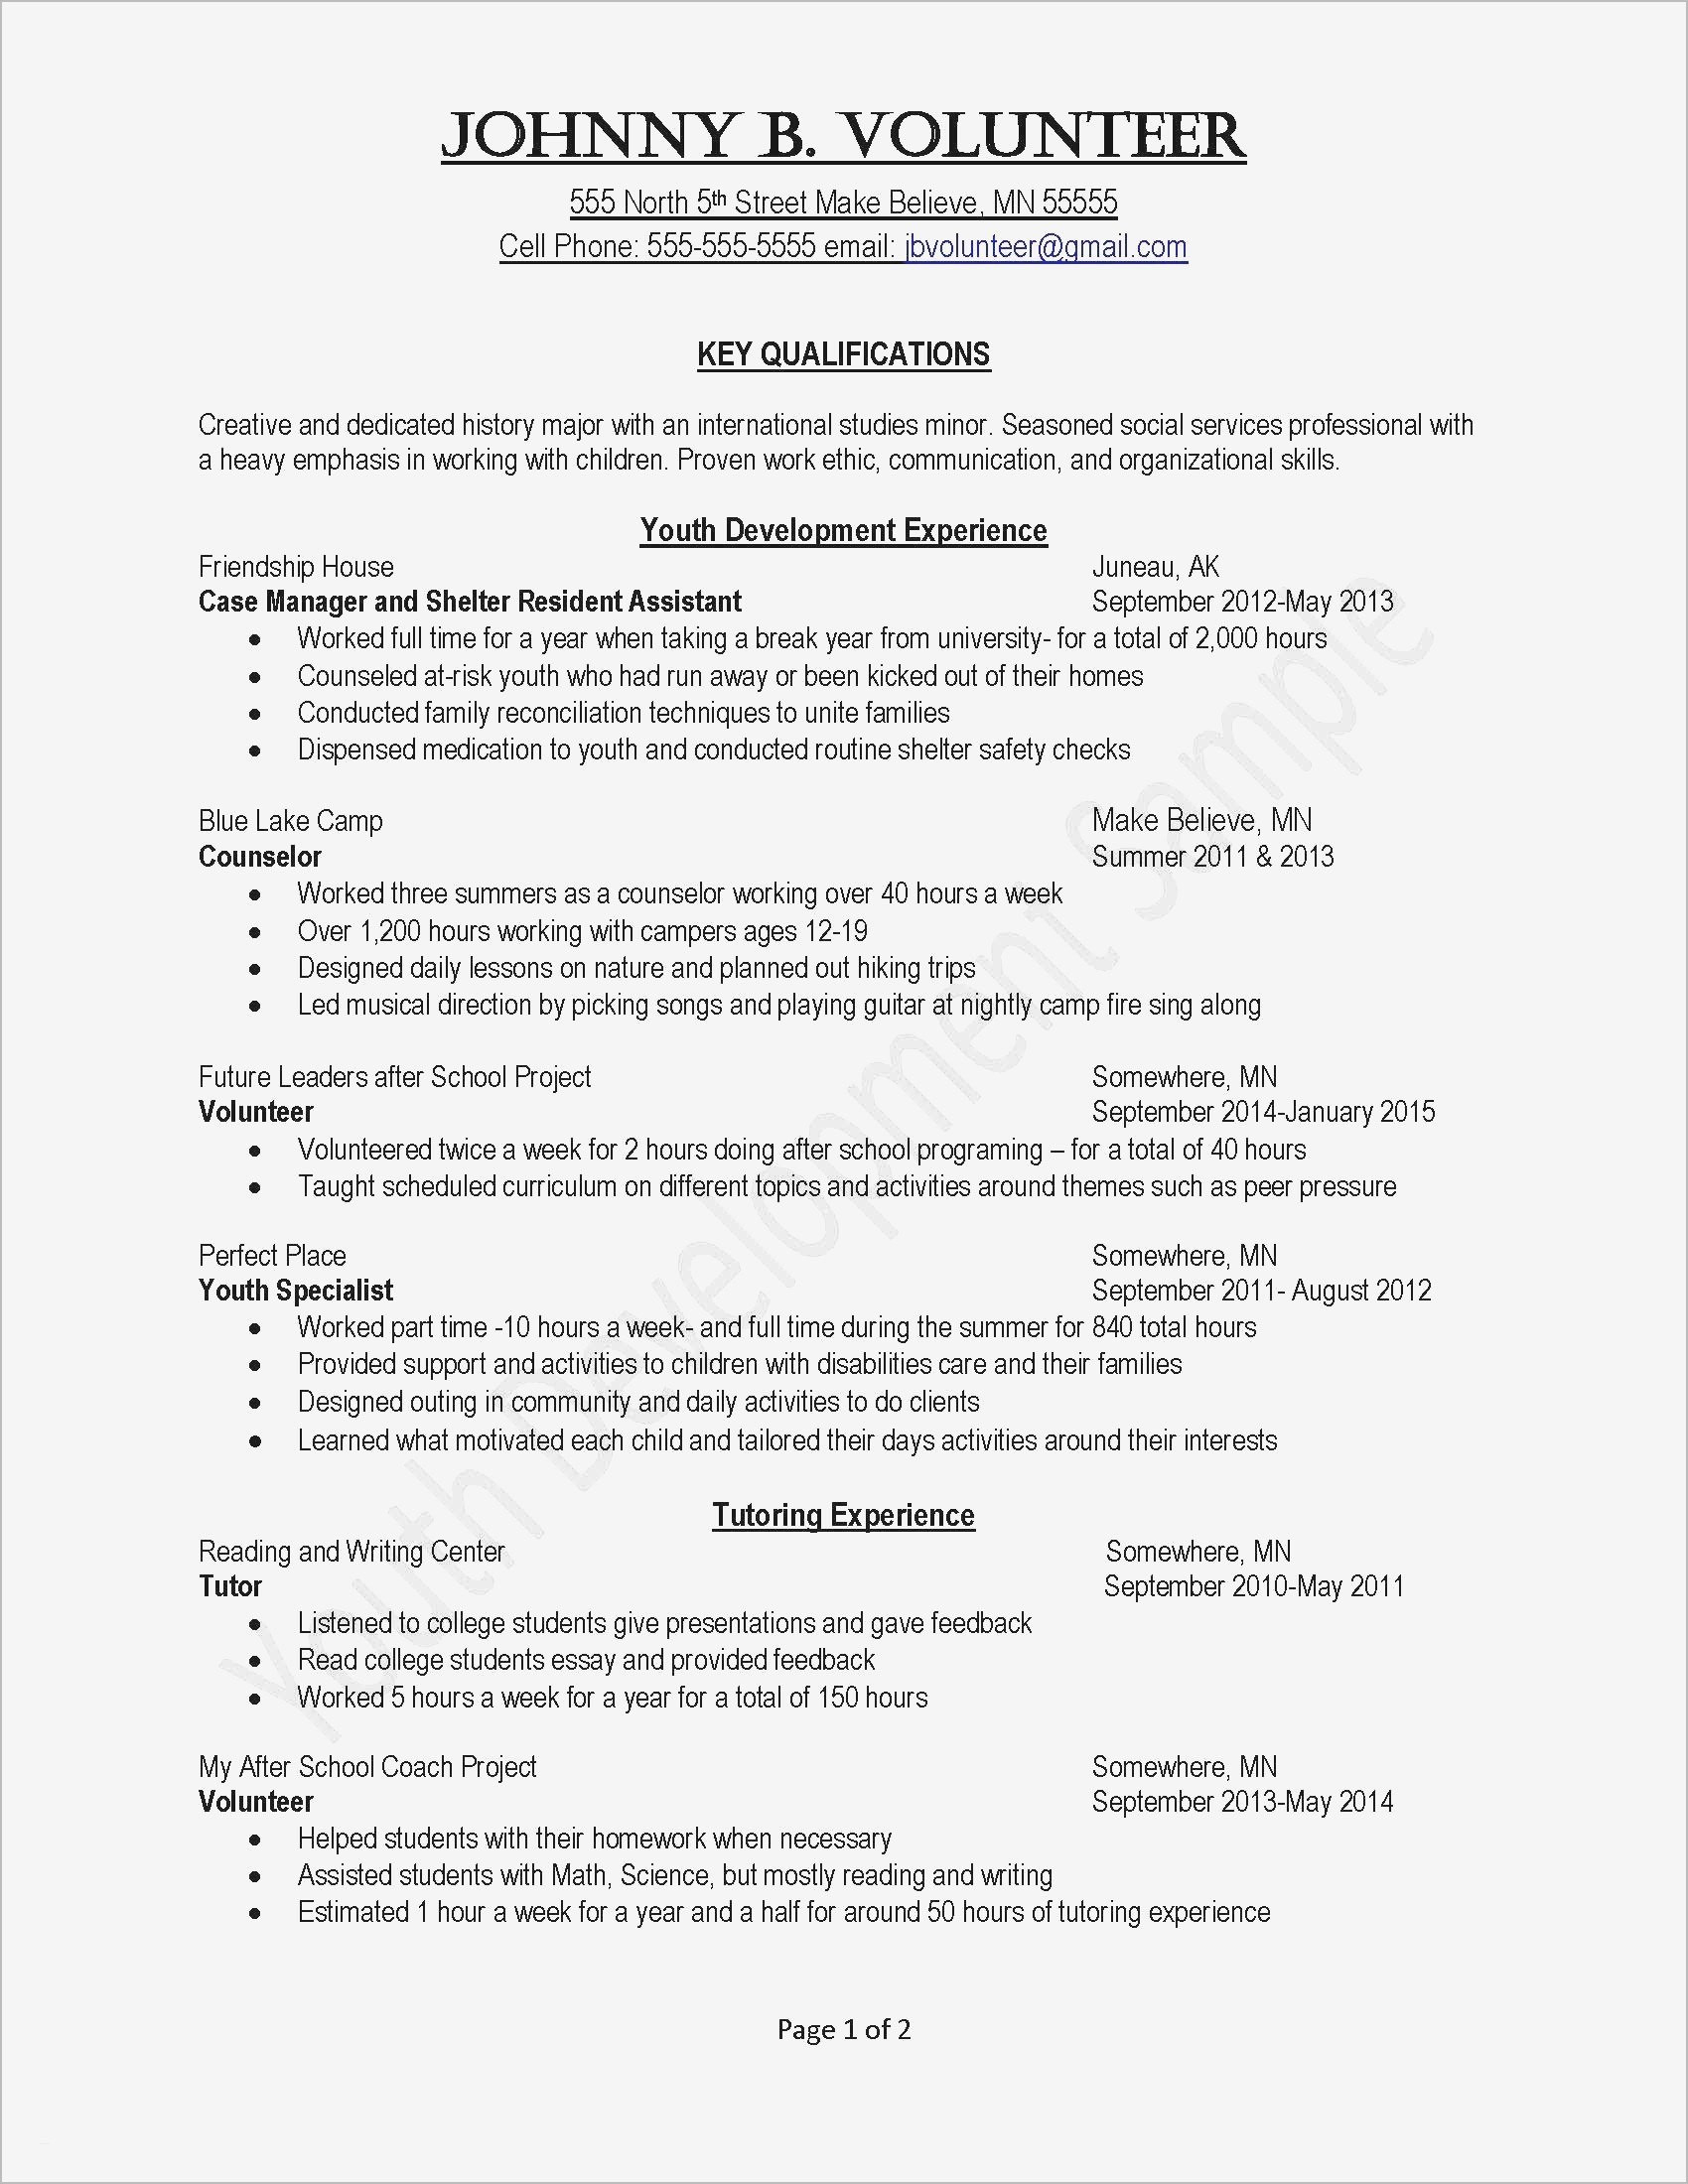 Basic Resume Cover Letter Template - Resume Cover Page Template Free Simple Job Fer Letter Template Us